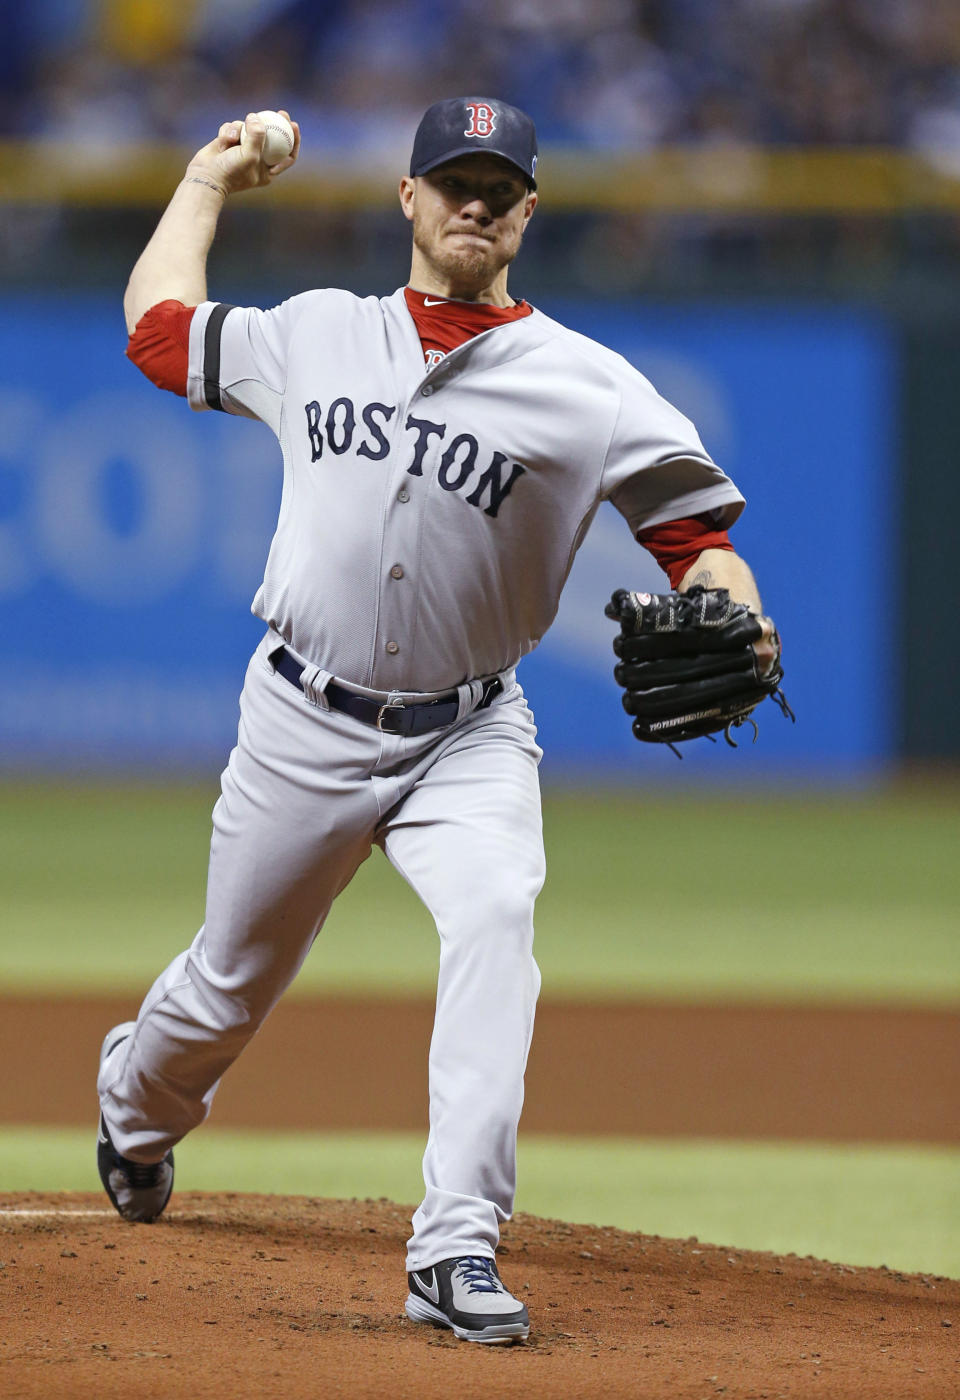 Red Sox beat Rays 3-1 in Game 4 to reach ALCS